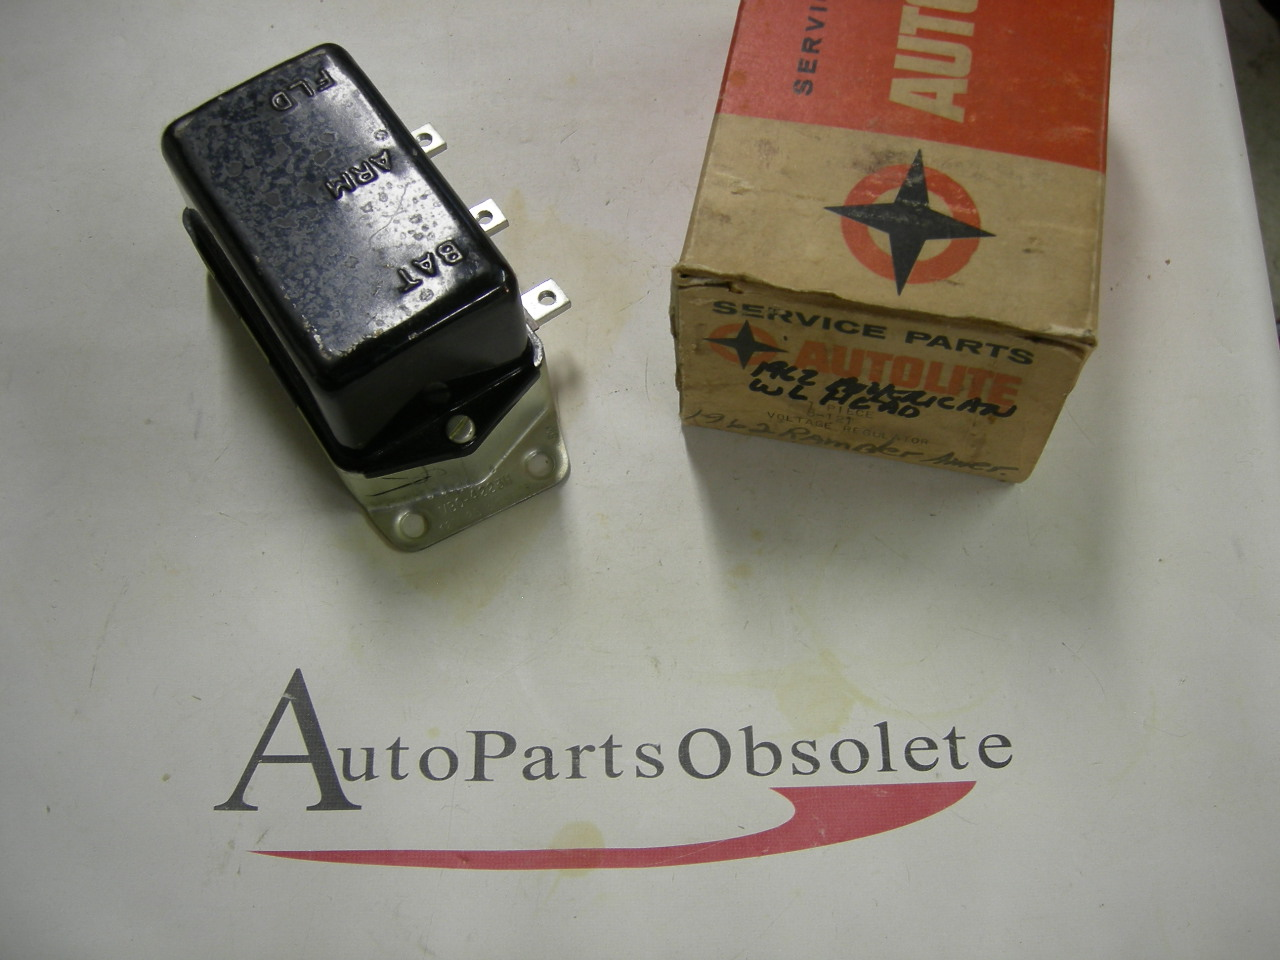 View Product1962 Rambler American voltage regulator NOS Autolite (a 8-121)